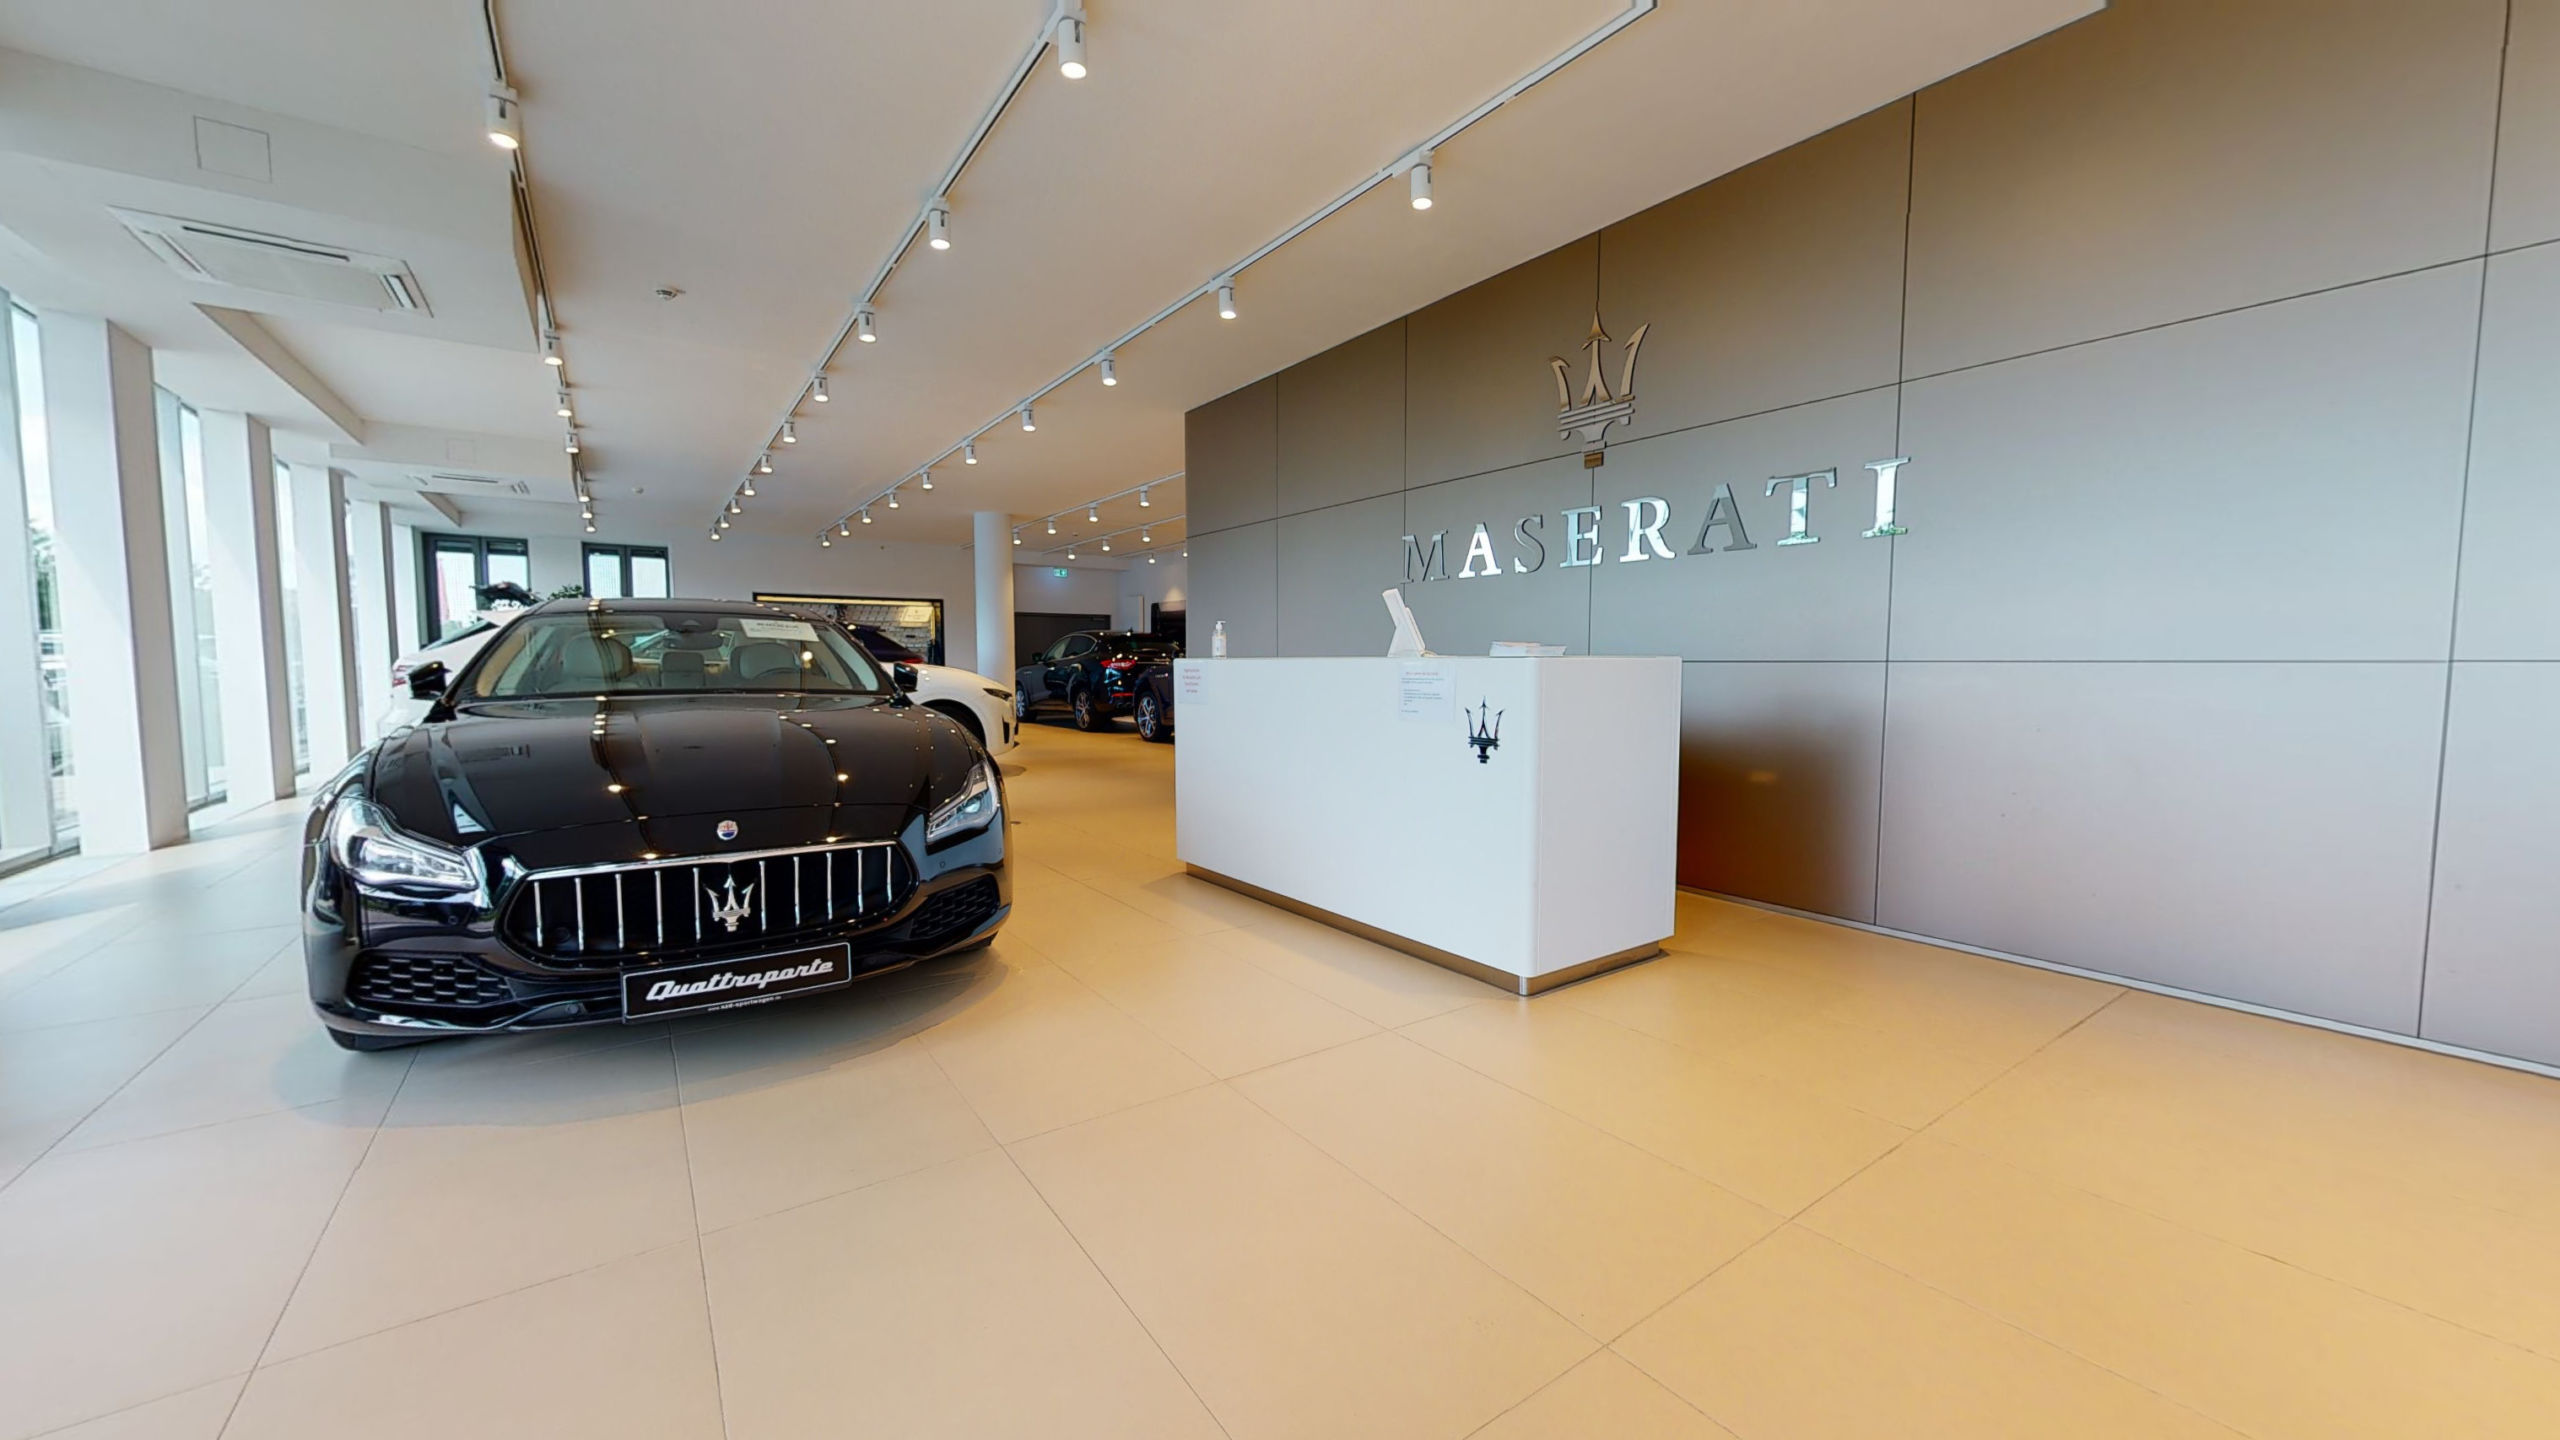 Maserati Showroom Munich Virtual Tour by 360INT